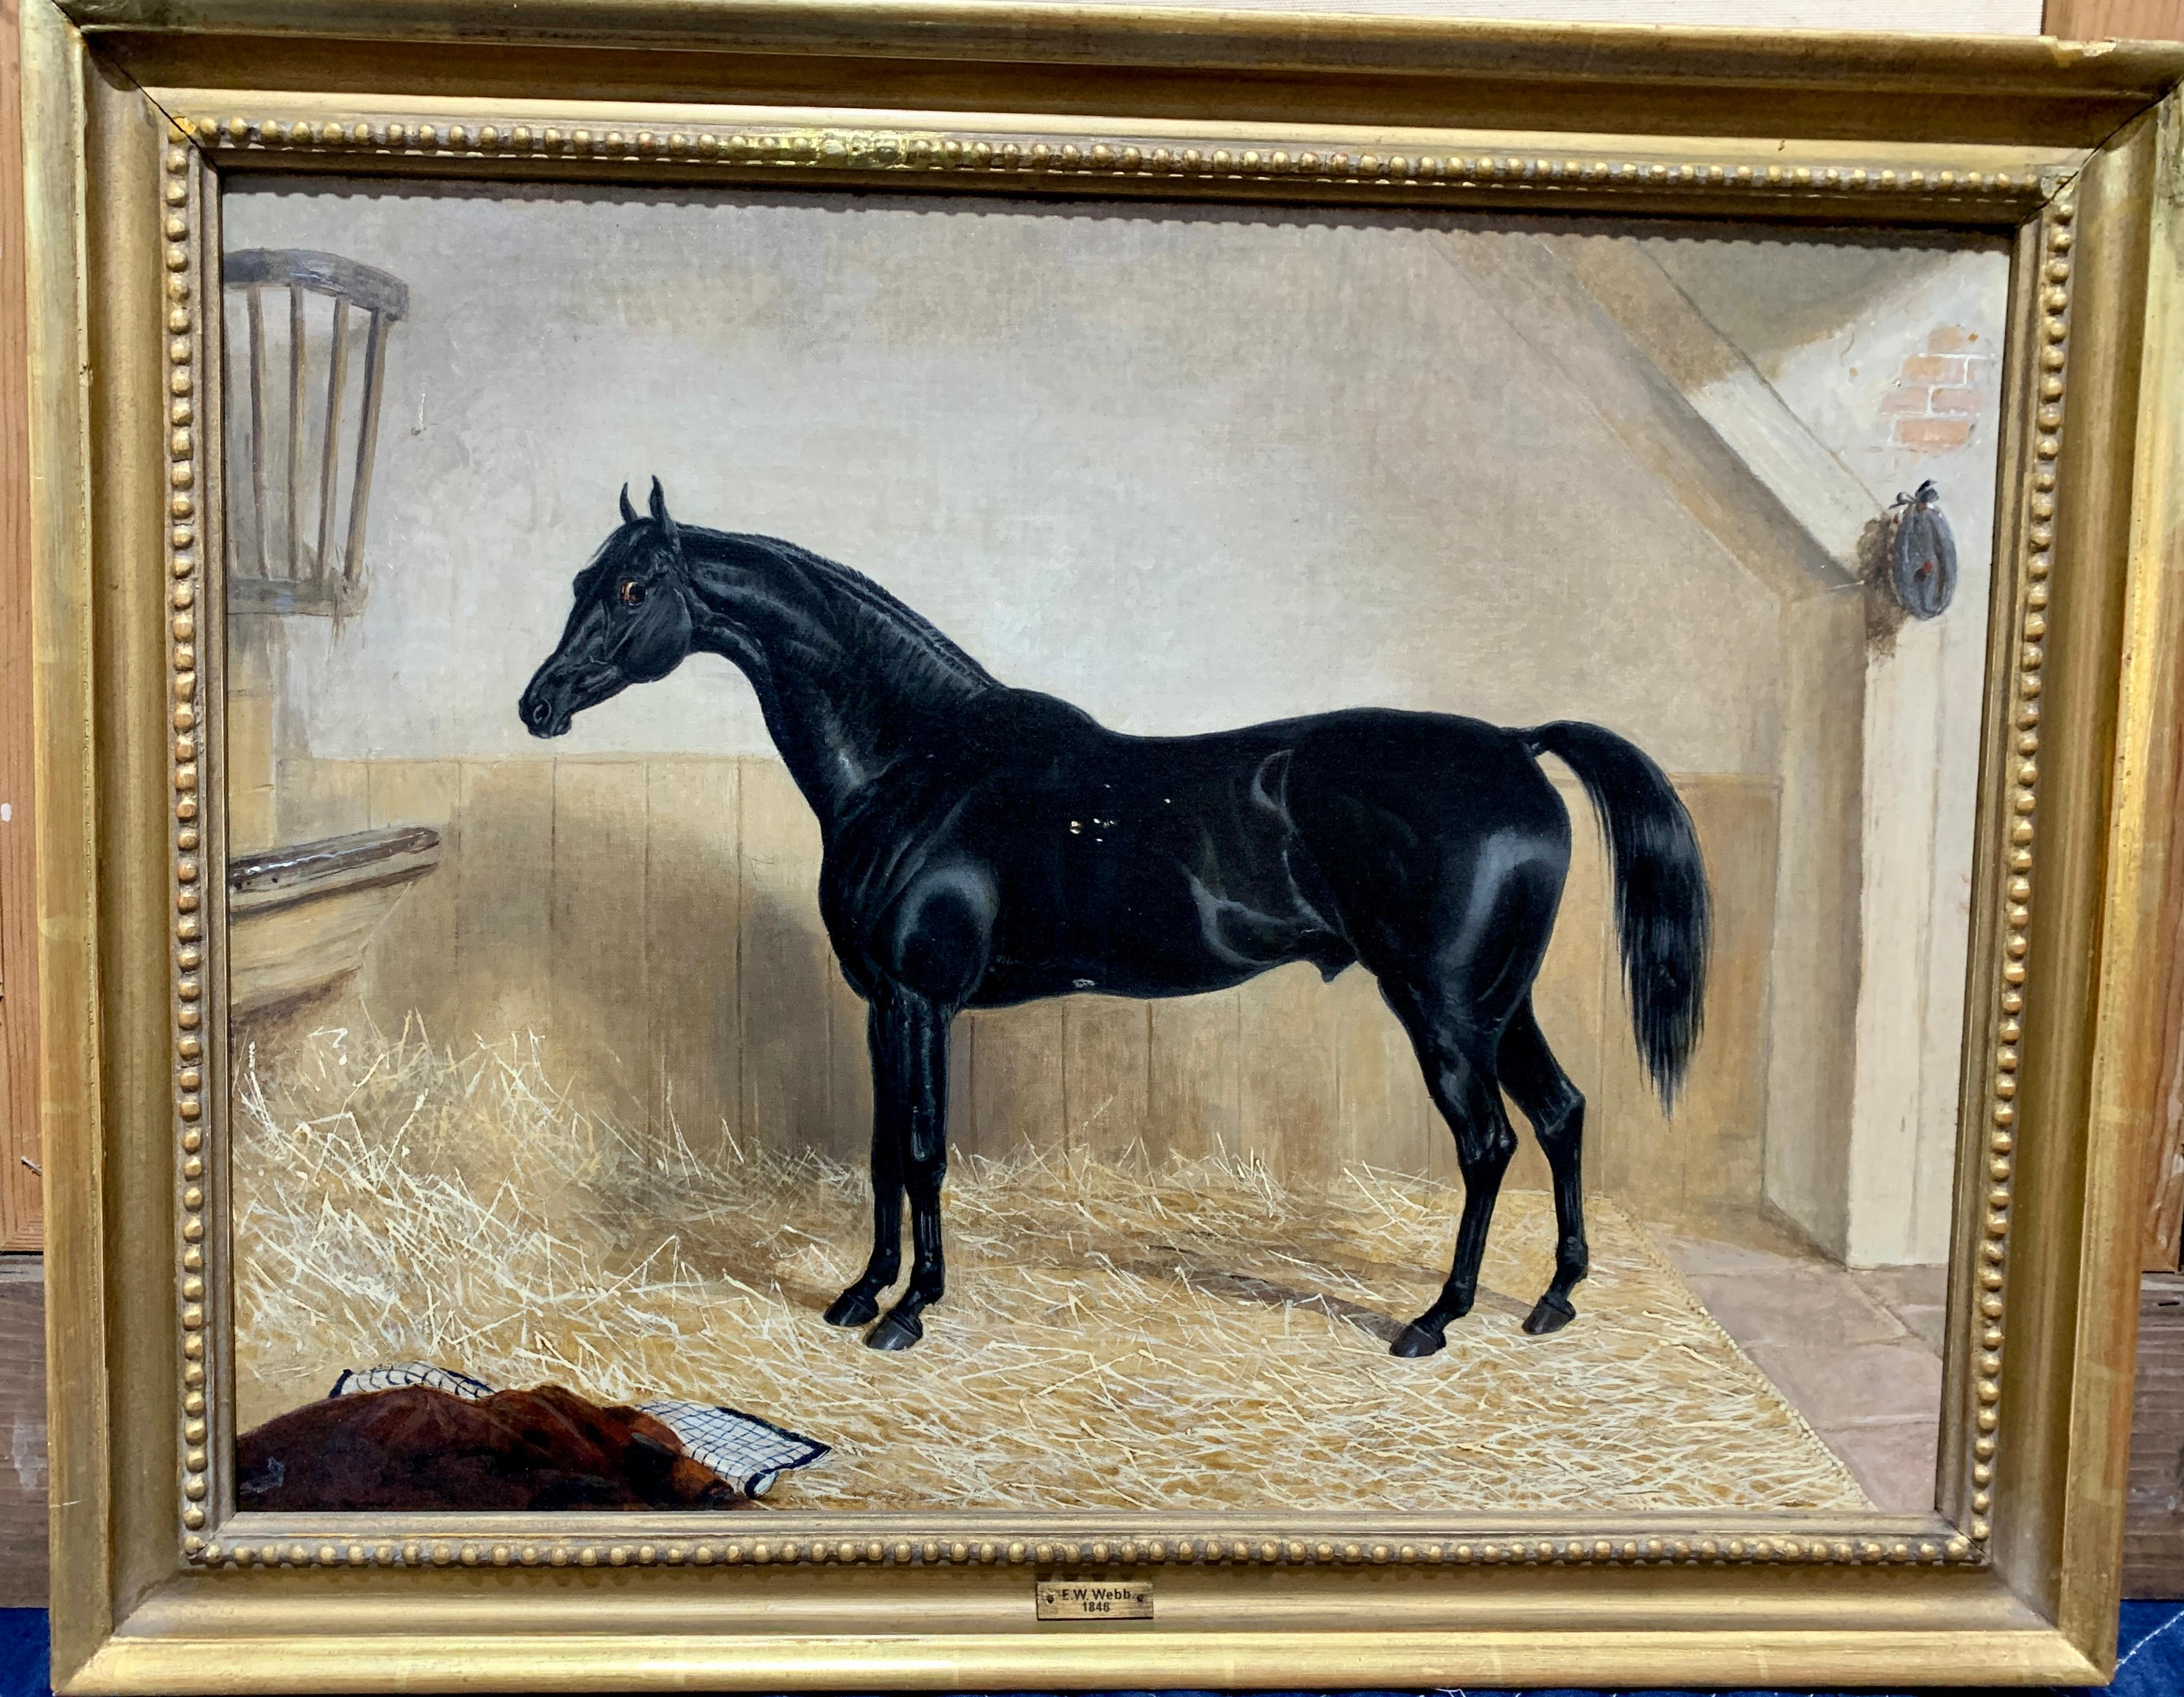 19th century English Victorian oil portrait of a black Horse in a stable.